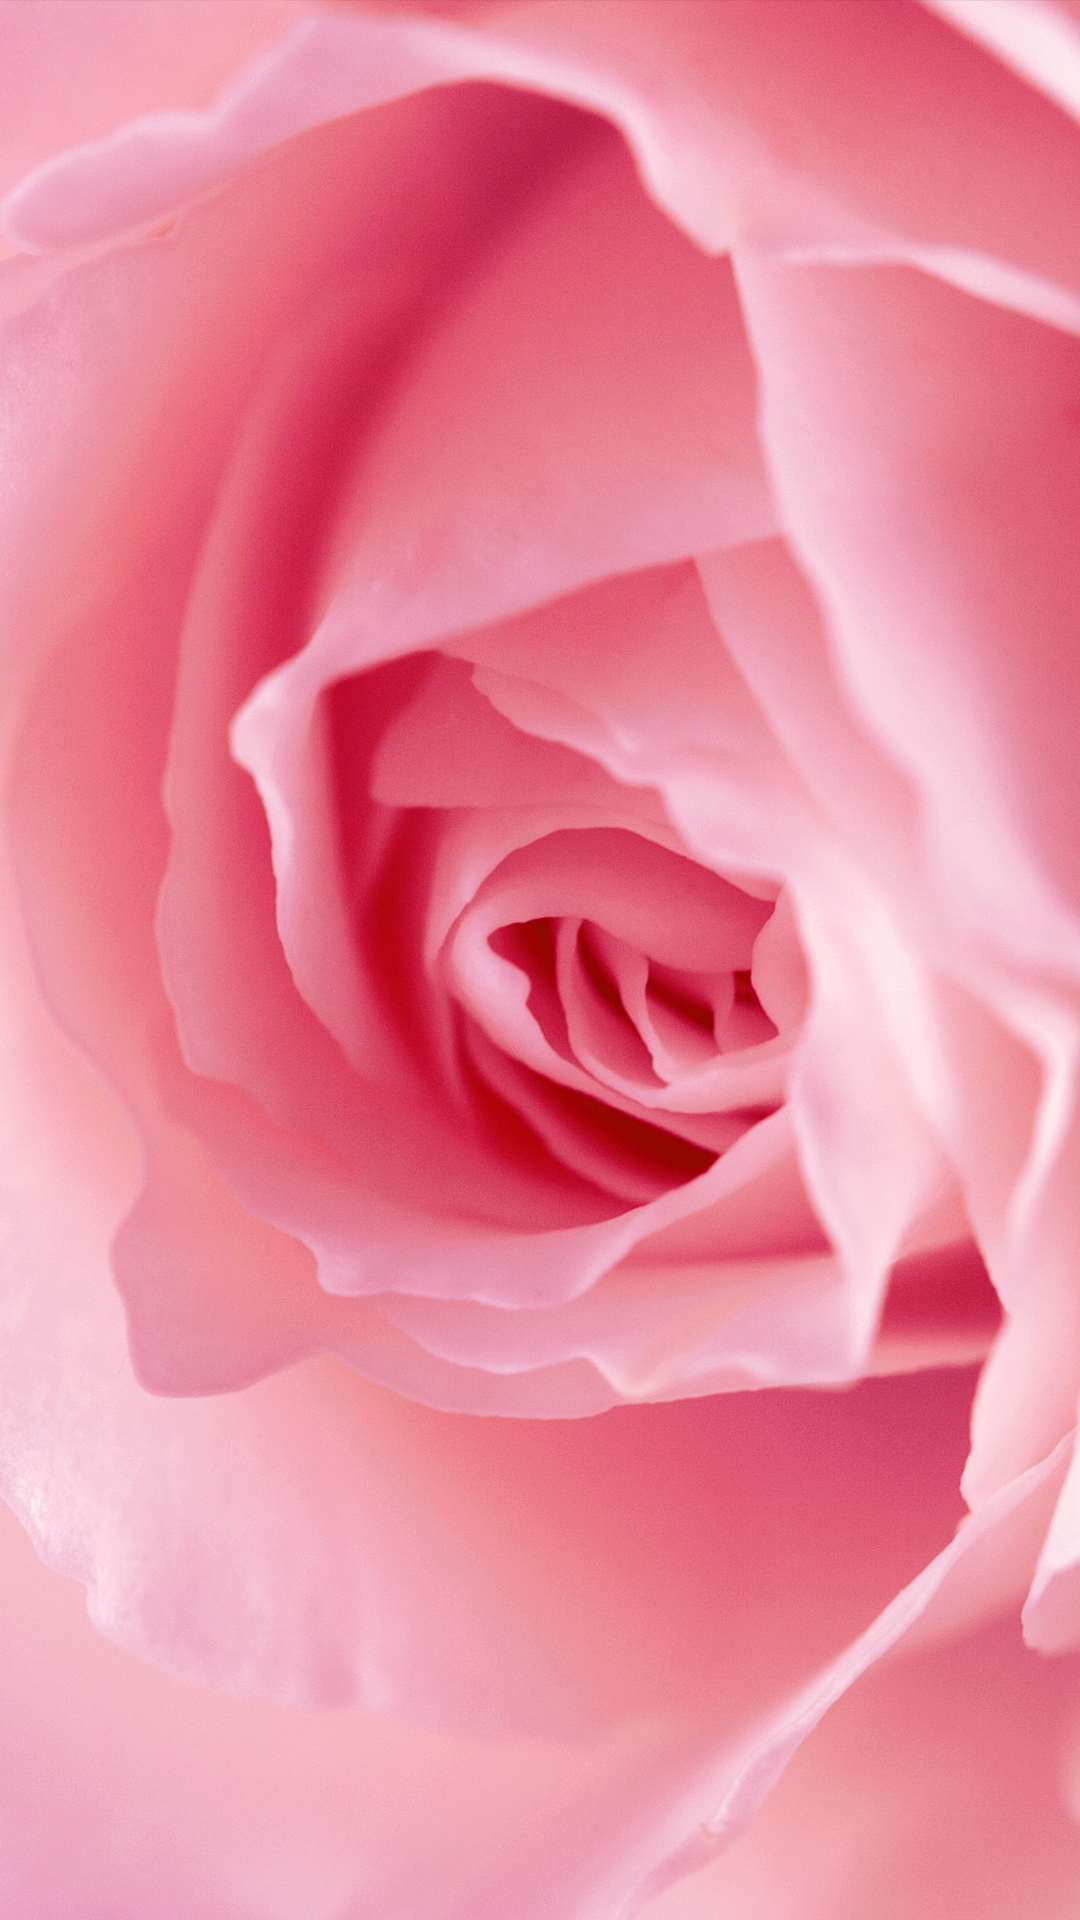 Pink rose hd wallpaper for your mobile phone - Pink rose hd wallpaper ...